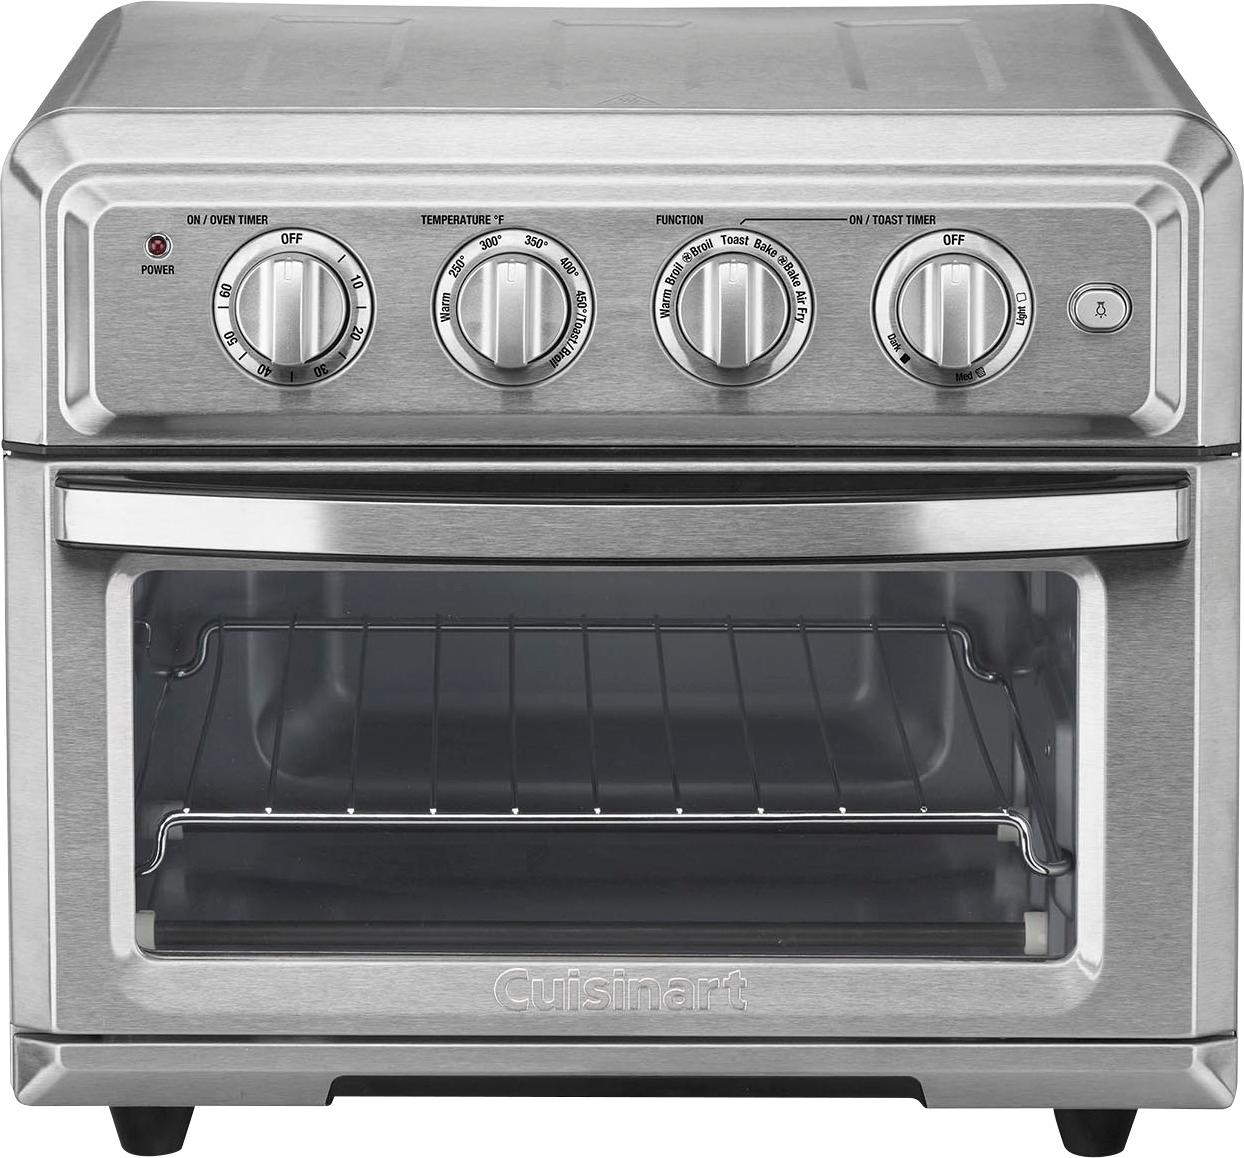 a stainless steel toaster oven